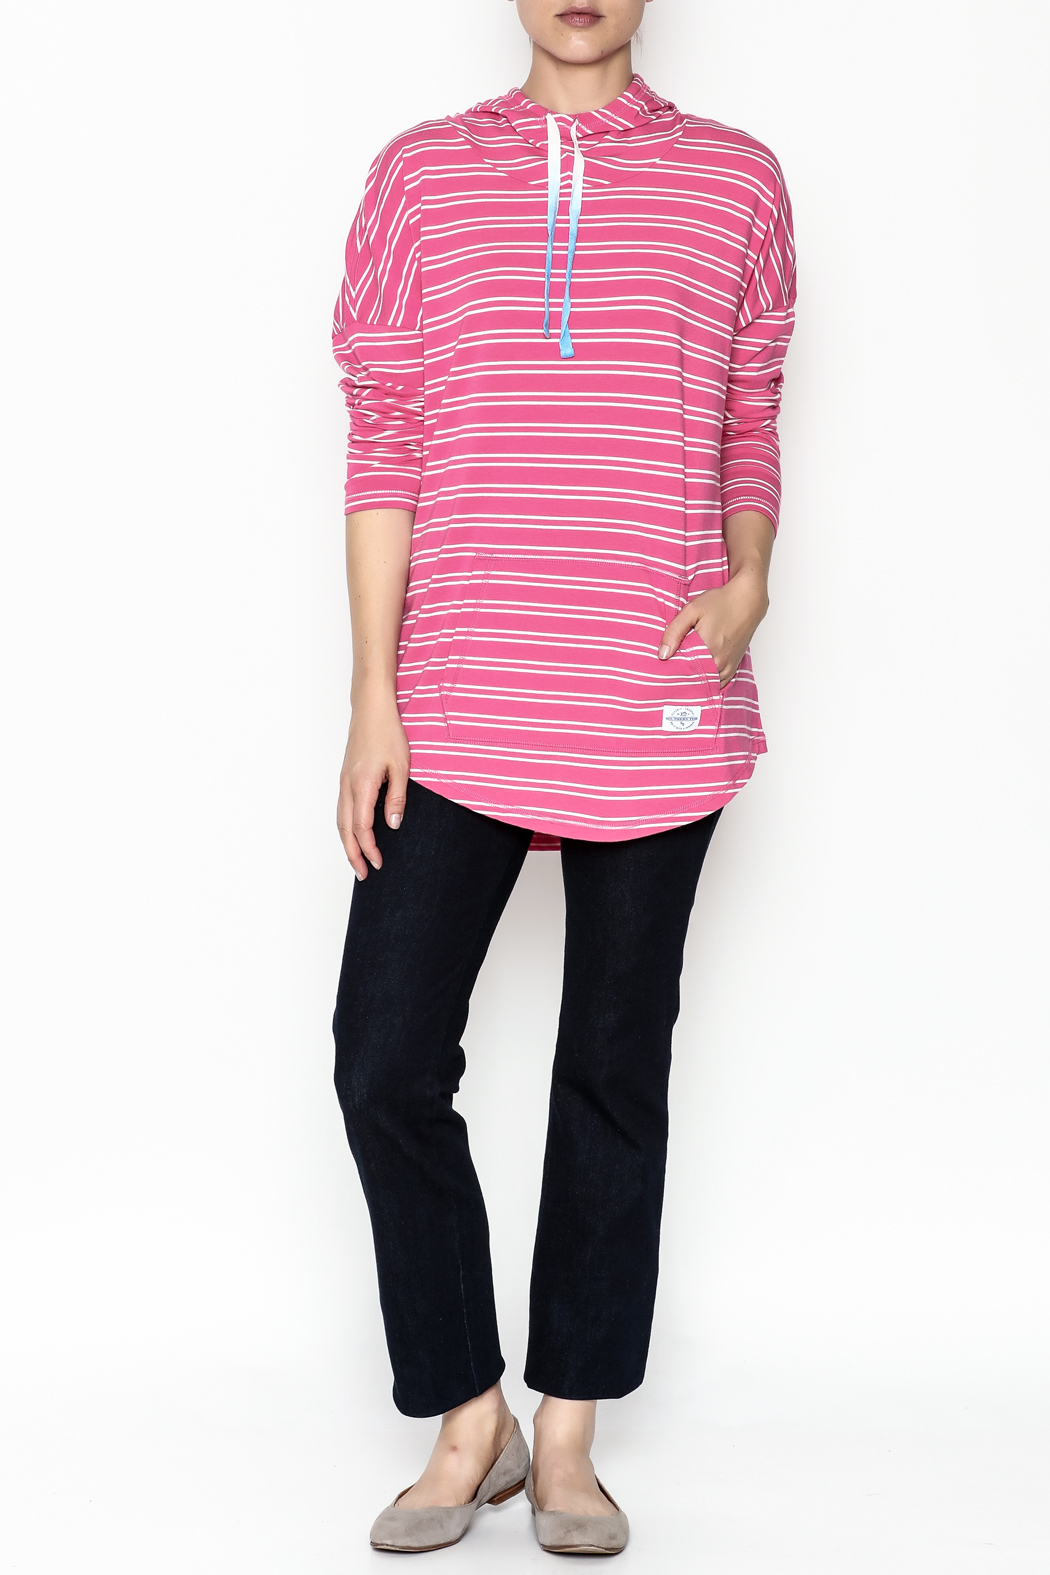 Southern Tide Skipper Pink Stripe Hoodie - Side Cropped Image